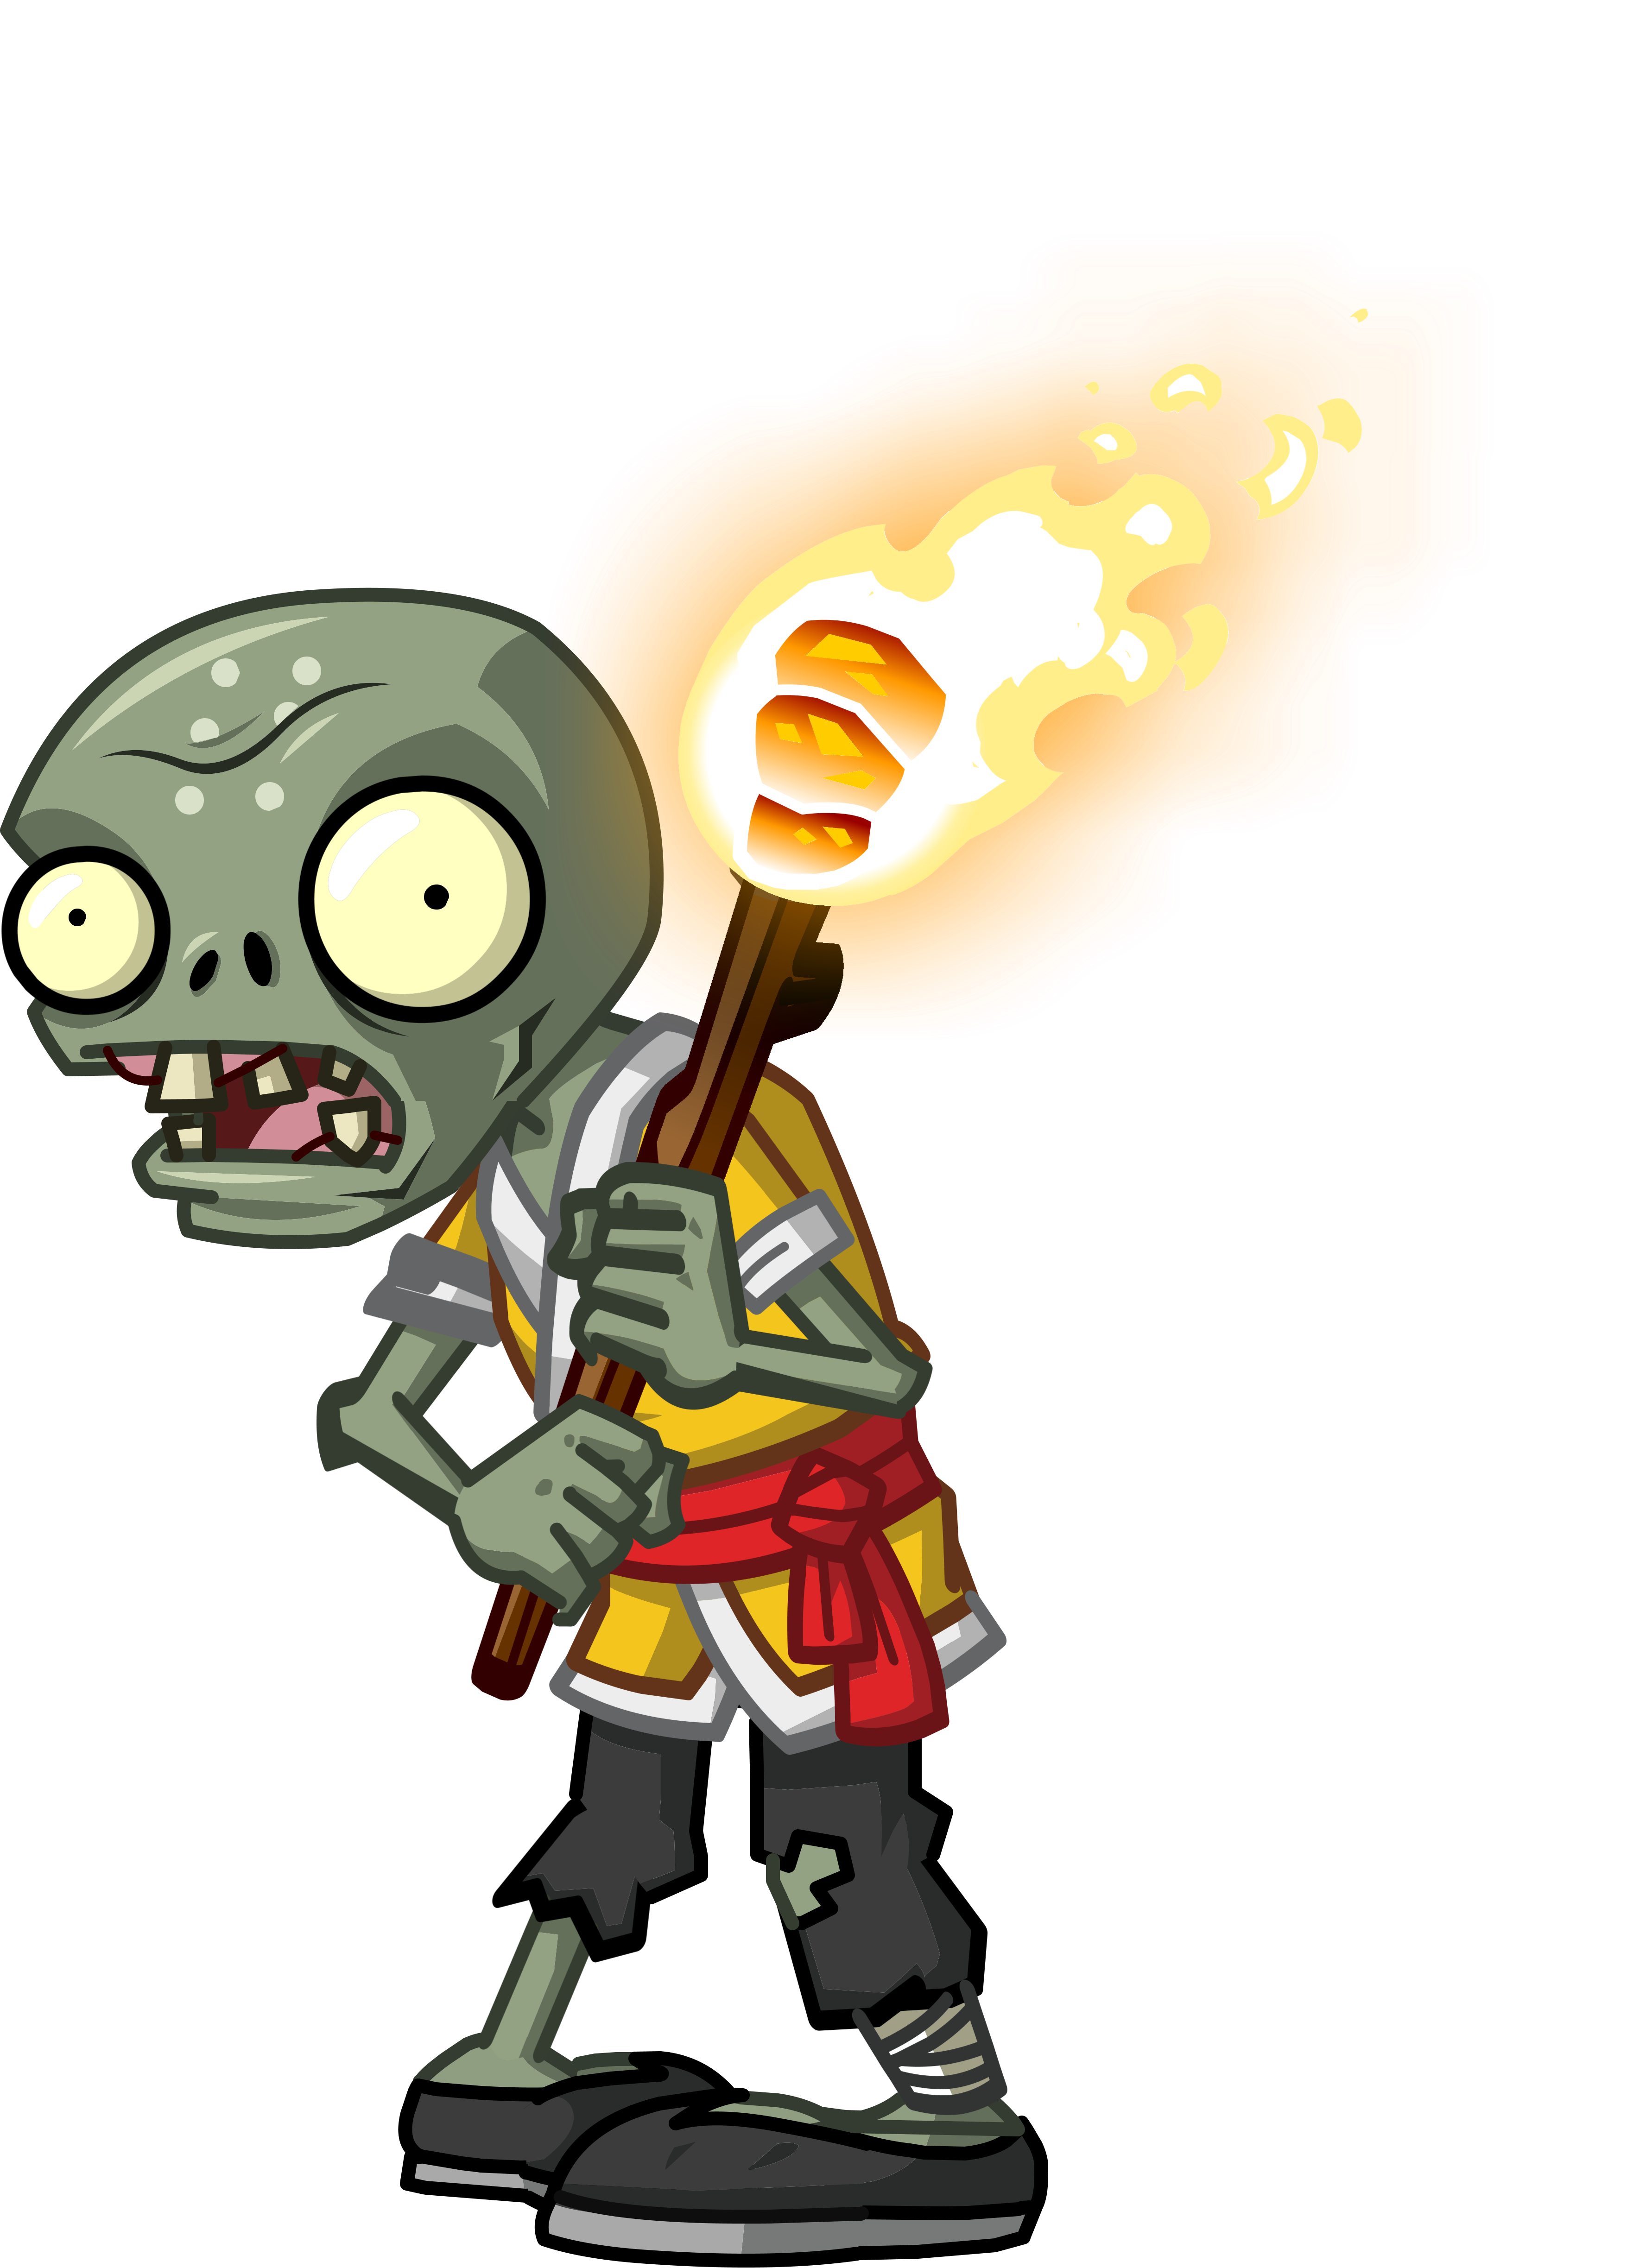 Torch monk zombie